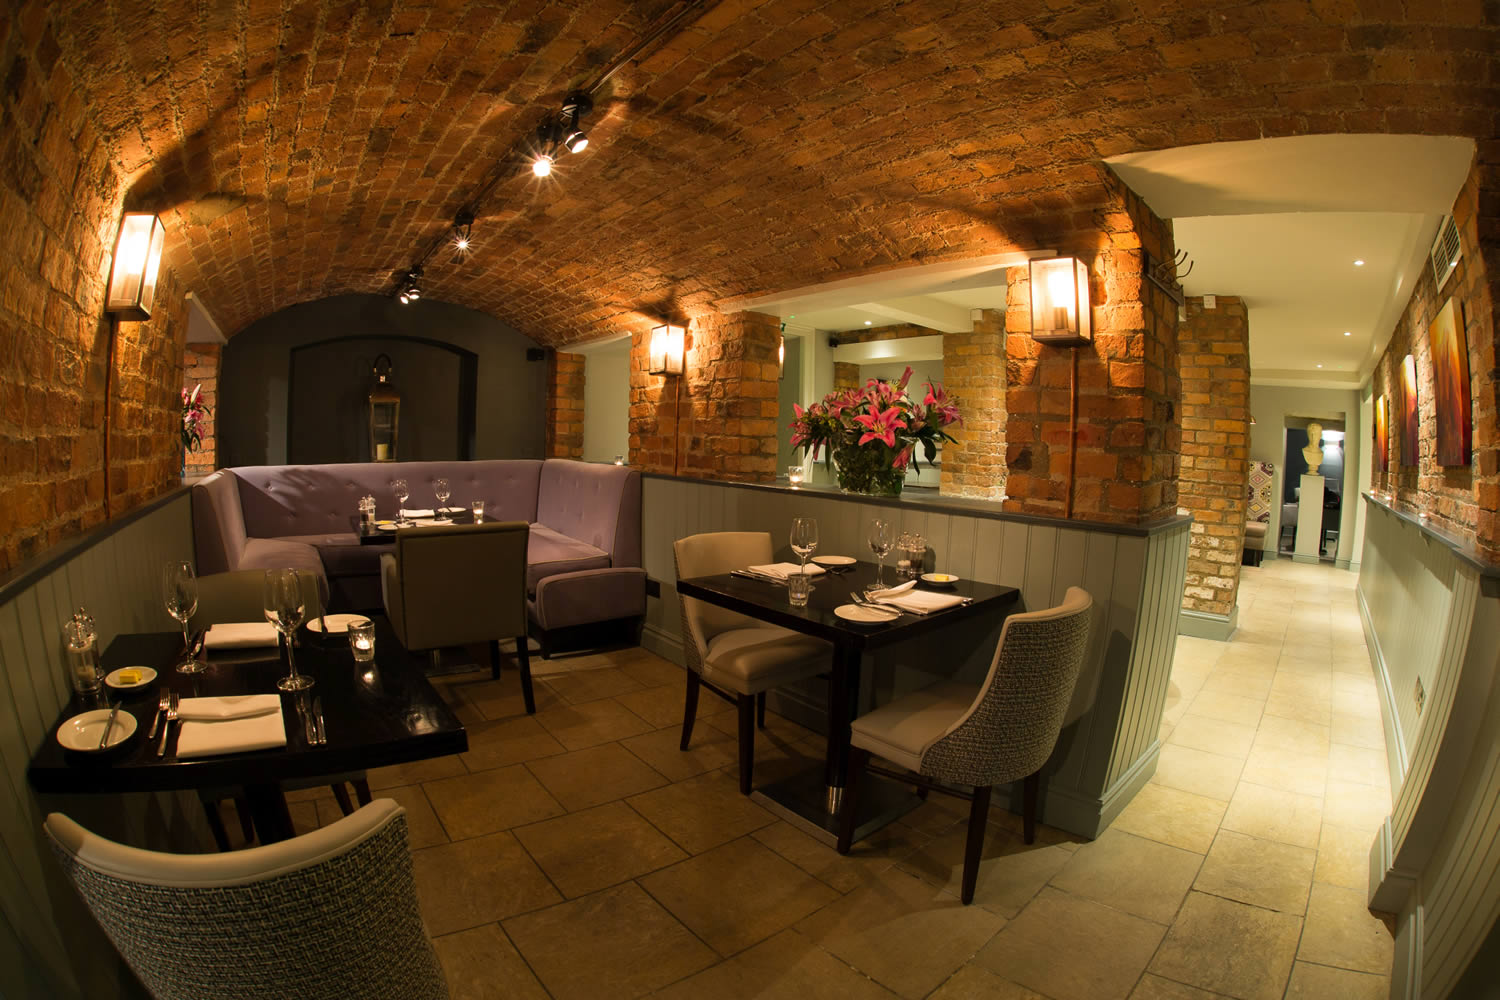 The brasserie at the grange hotel food drink york north yorkshire welcome to yorkshire - The grange hotel restaurant ...